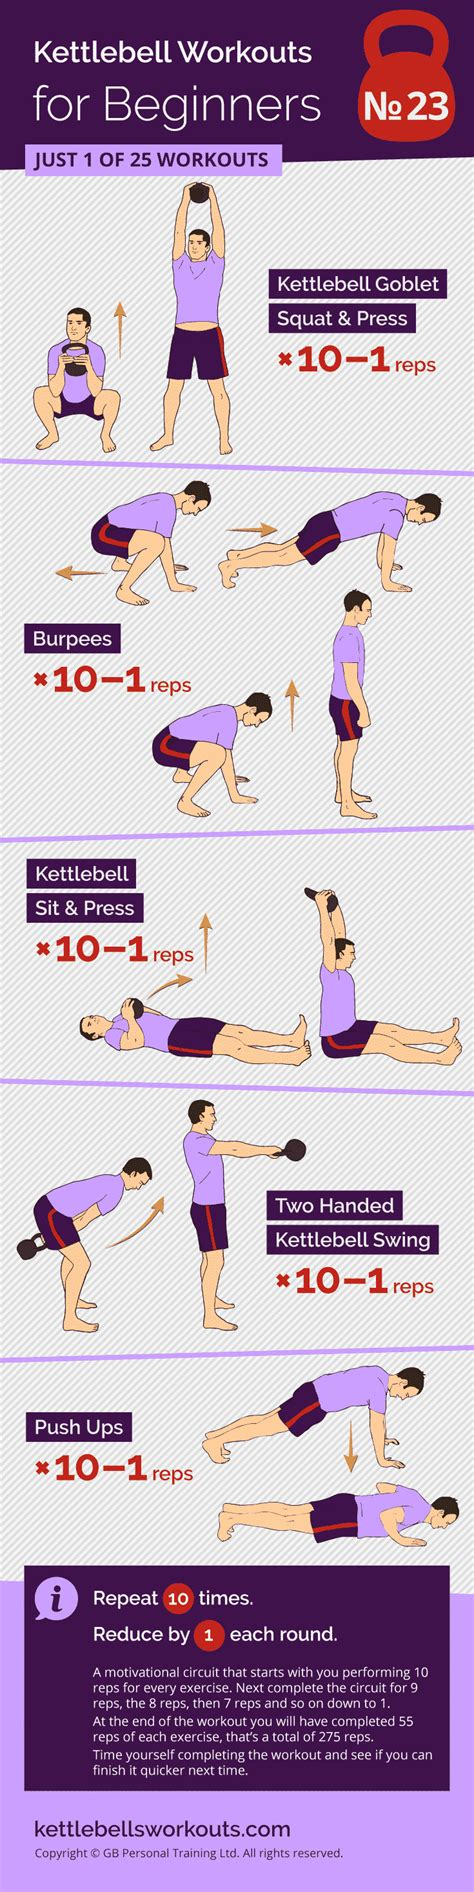 reps workout countdown kettlebell exercises burpee workouts beginners